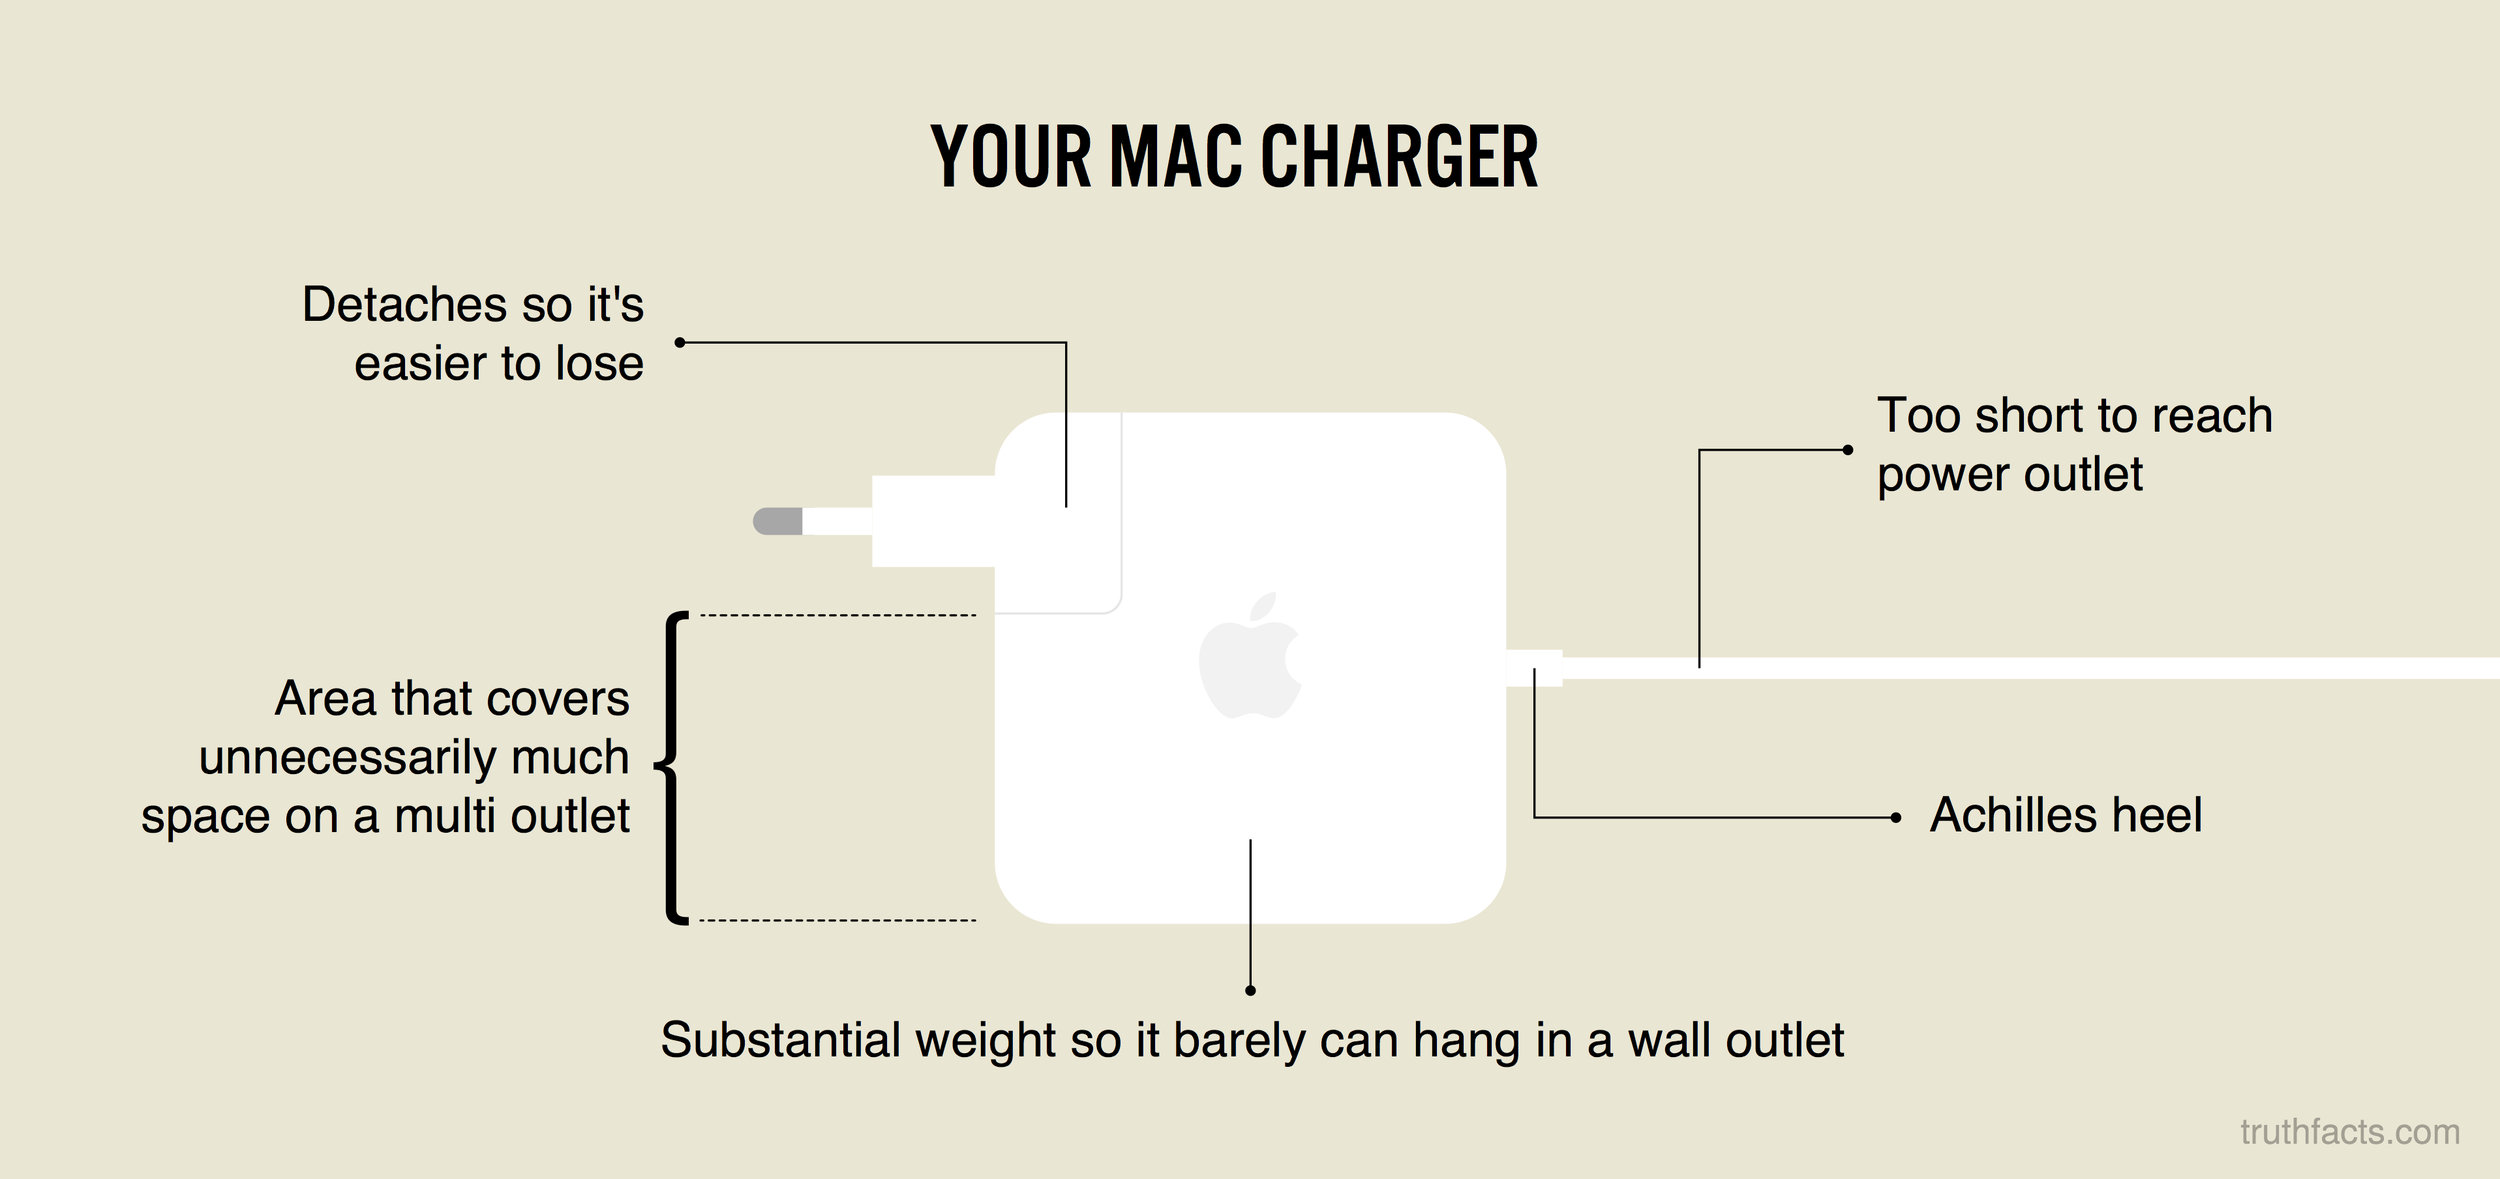 Your mac charger